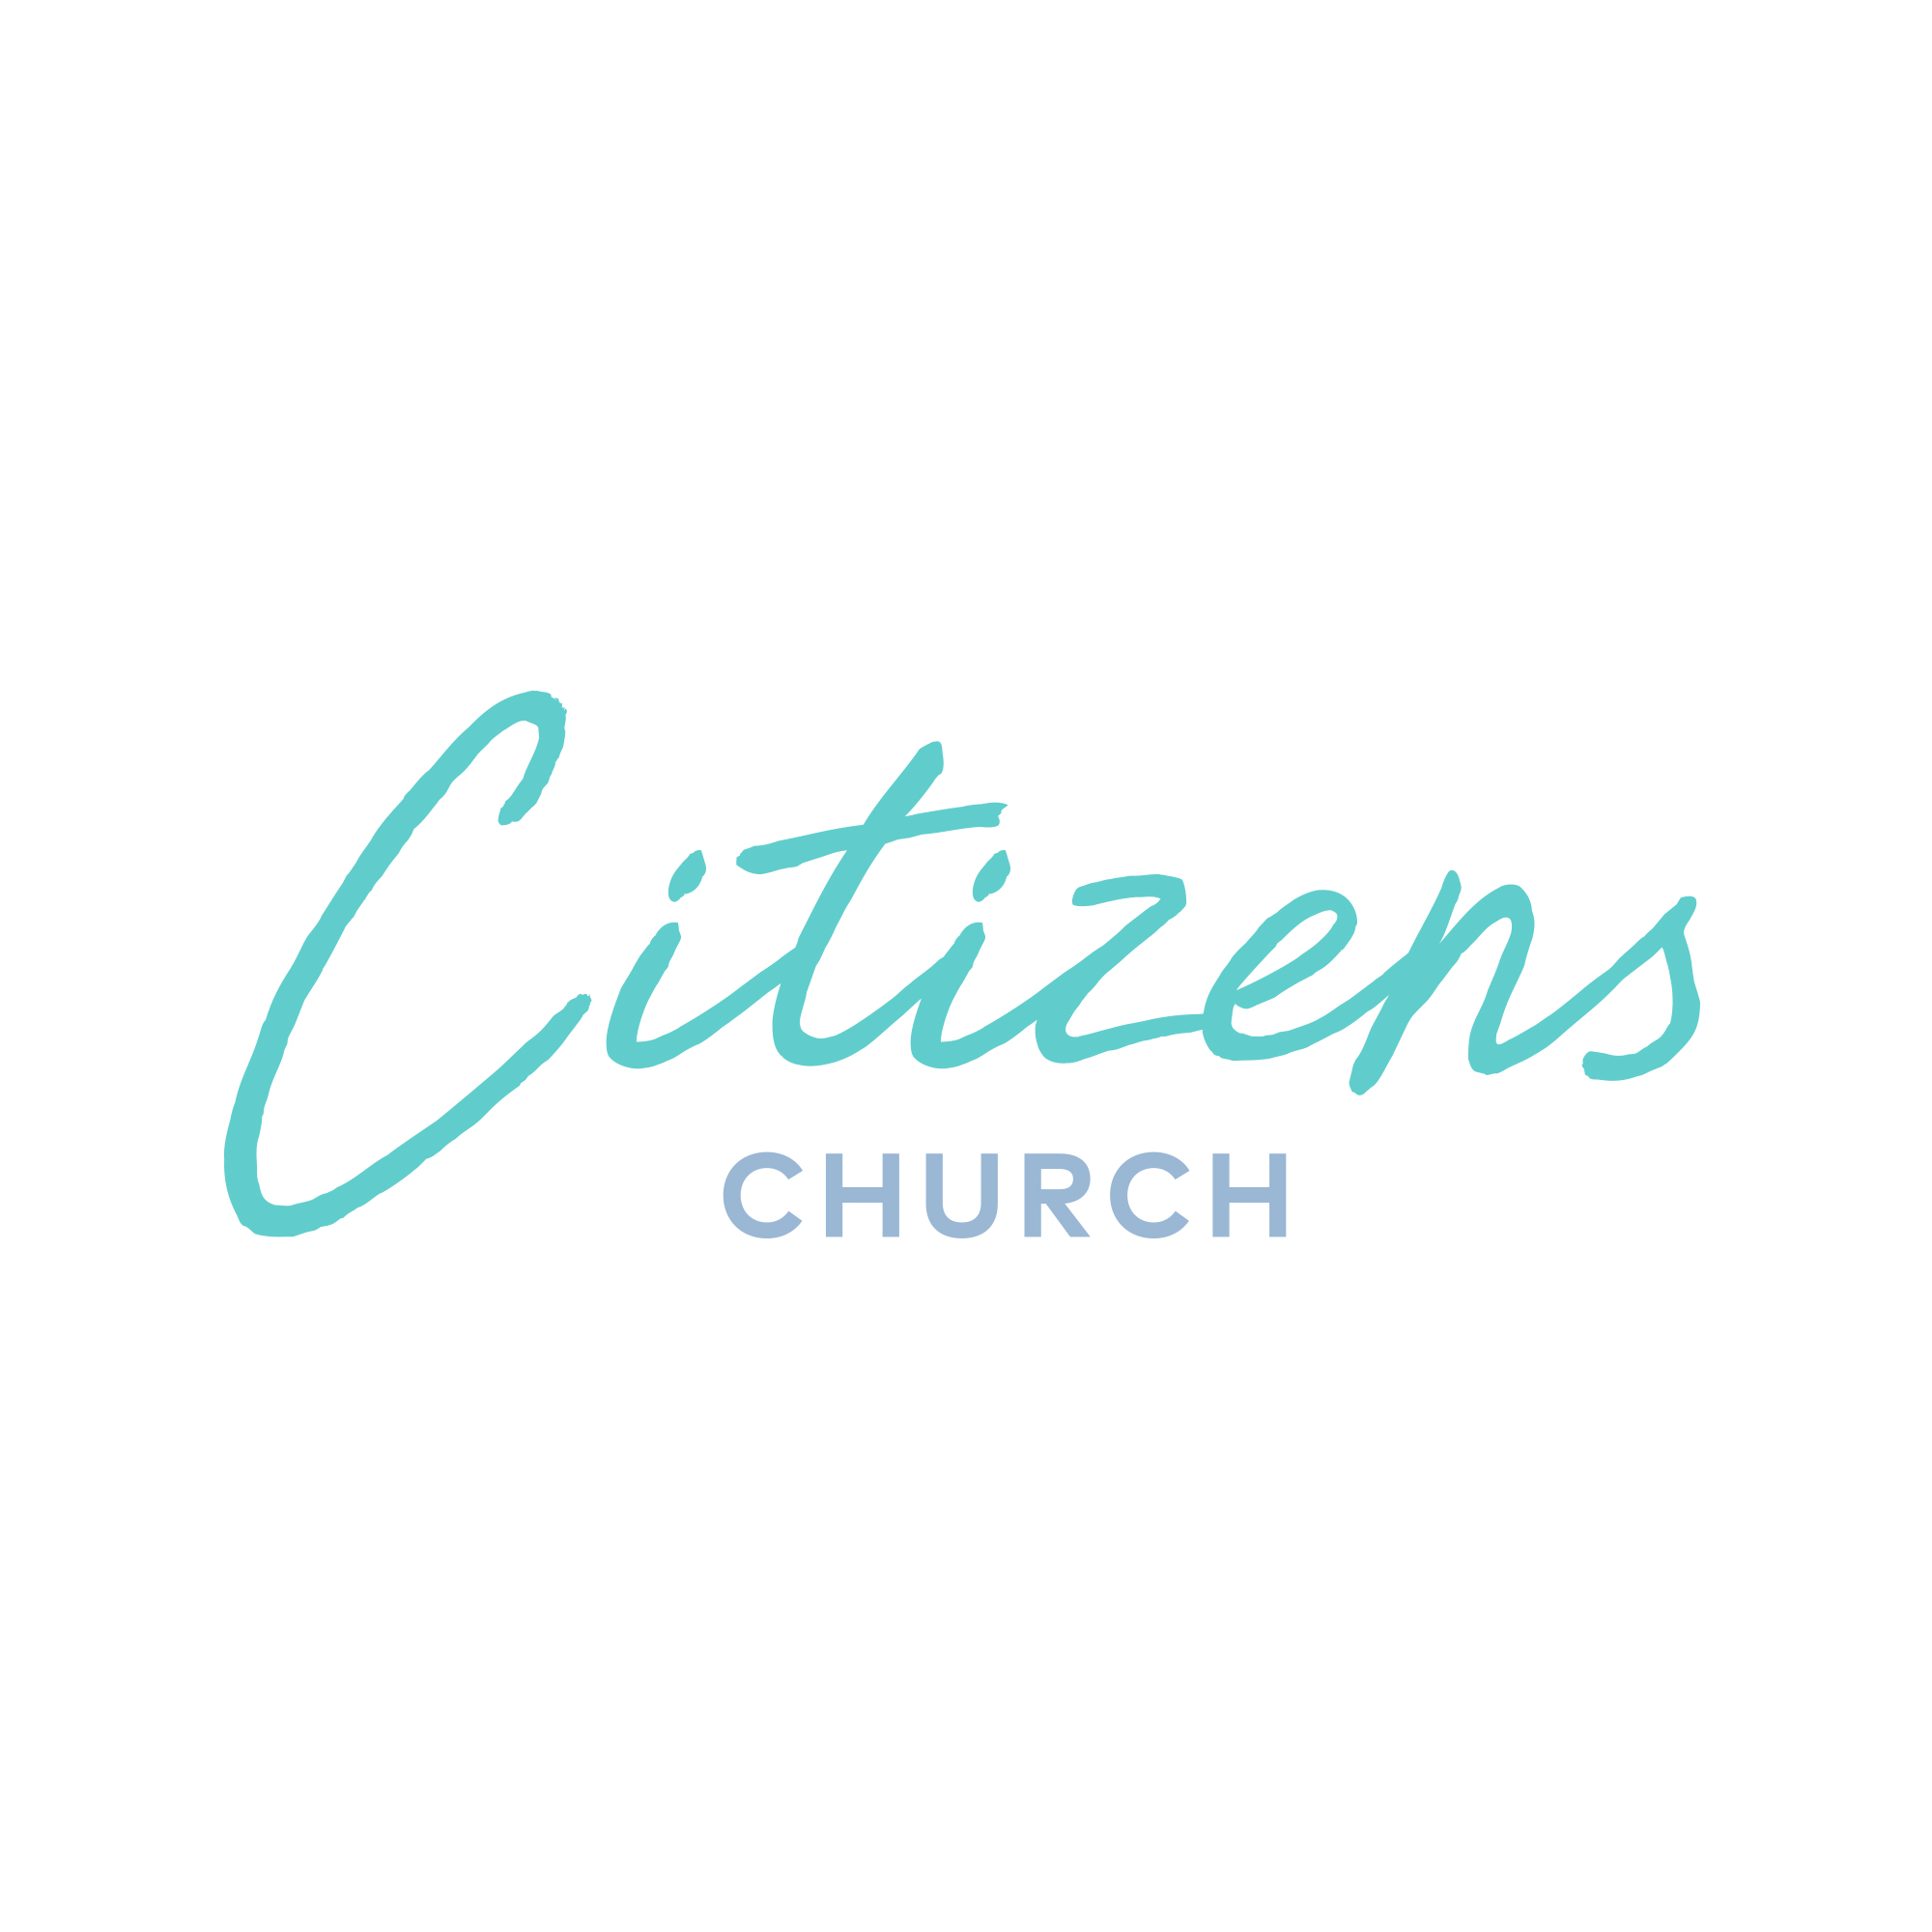 Citizen Church, Canada